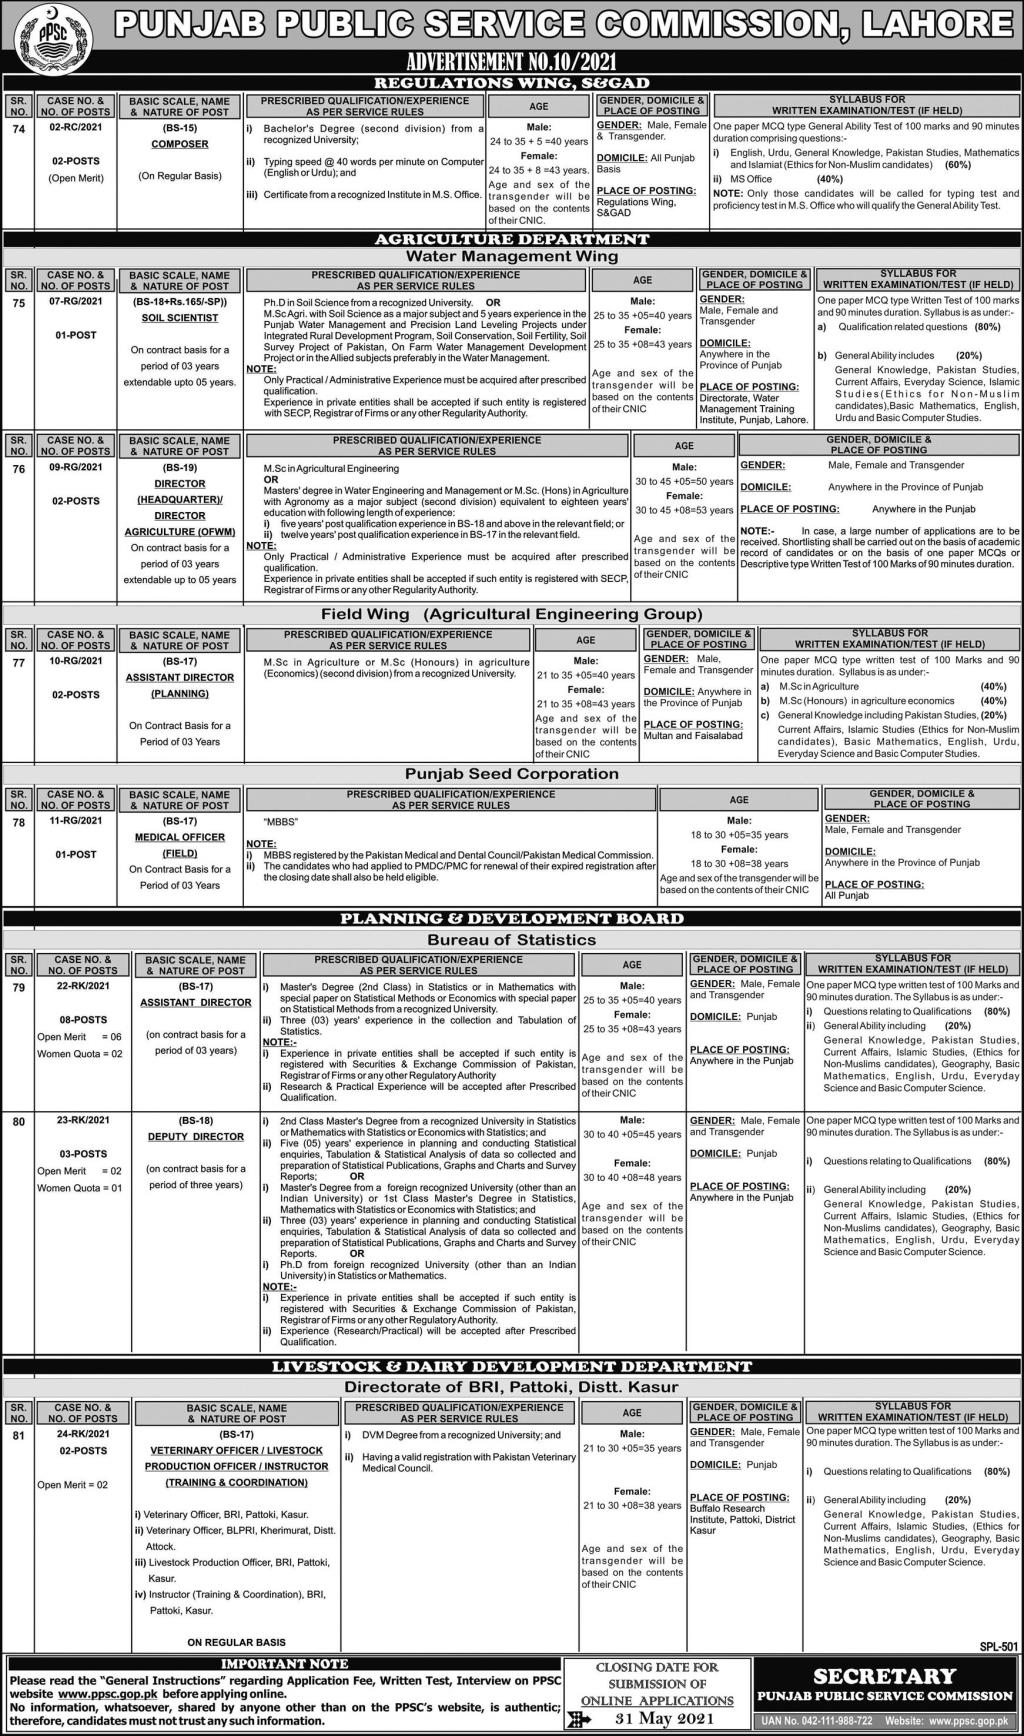 This page is about Punjab Public Service Commission (PPSC) Jobs May 2021 Latest Advertisment. Punjab Public Service Commission (PPSC) invites applications for the posts announced on a contact / permanent basis from suitable candidates for the following positions such as Composer, Soil Scientist, Director Agriculture (OFWM), Assistant Director (Planning), Medical Officer, Assistant Director, Deputy Director, Veterinary Officer/Livestock Production Officer. These vacancies are published in Express Newspaper, one of the best News paper of Pakistan. This advertisement has pulibhsed on 05 May 2021 and Last Date to apply is 31 May 2021.